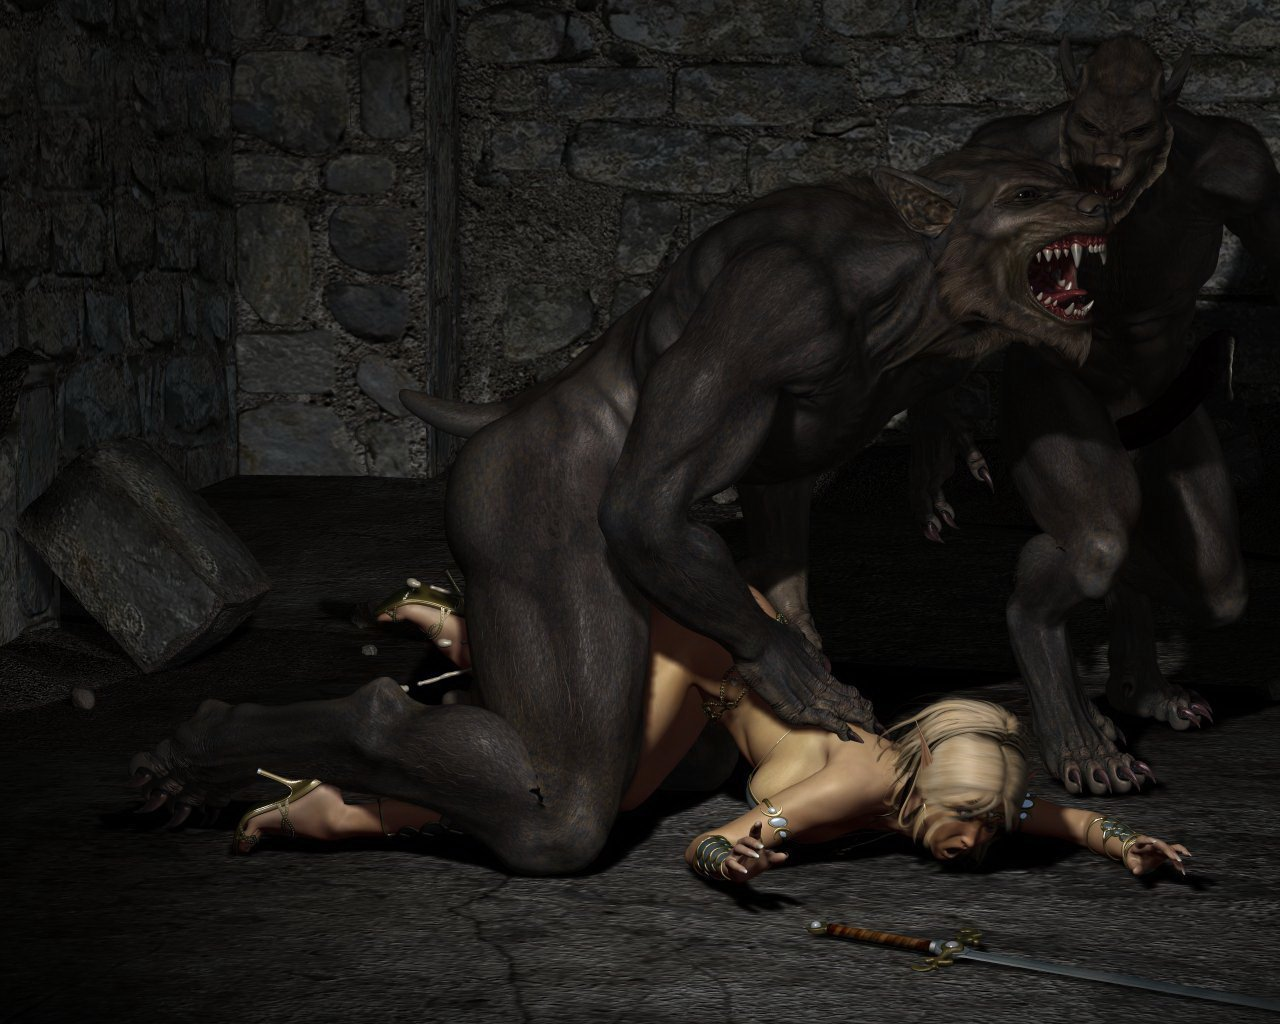 Werewolf porn pics naked images